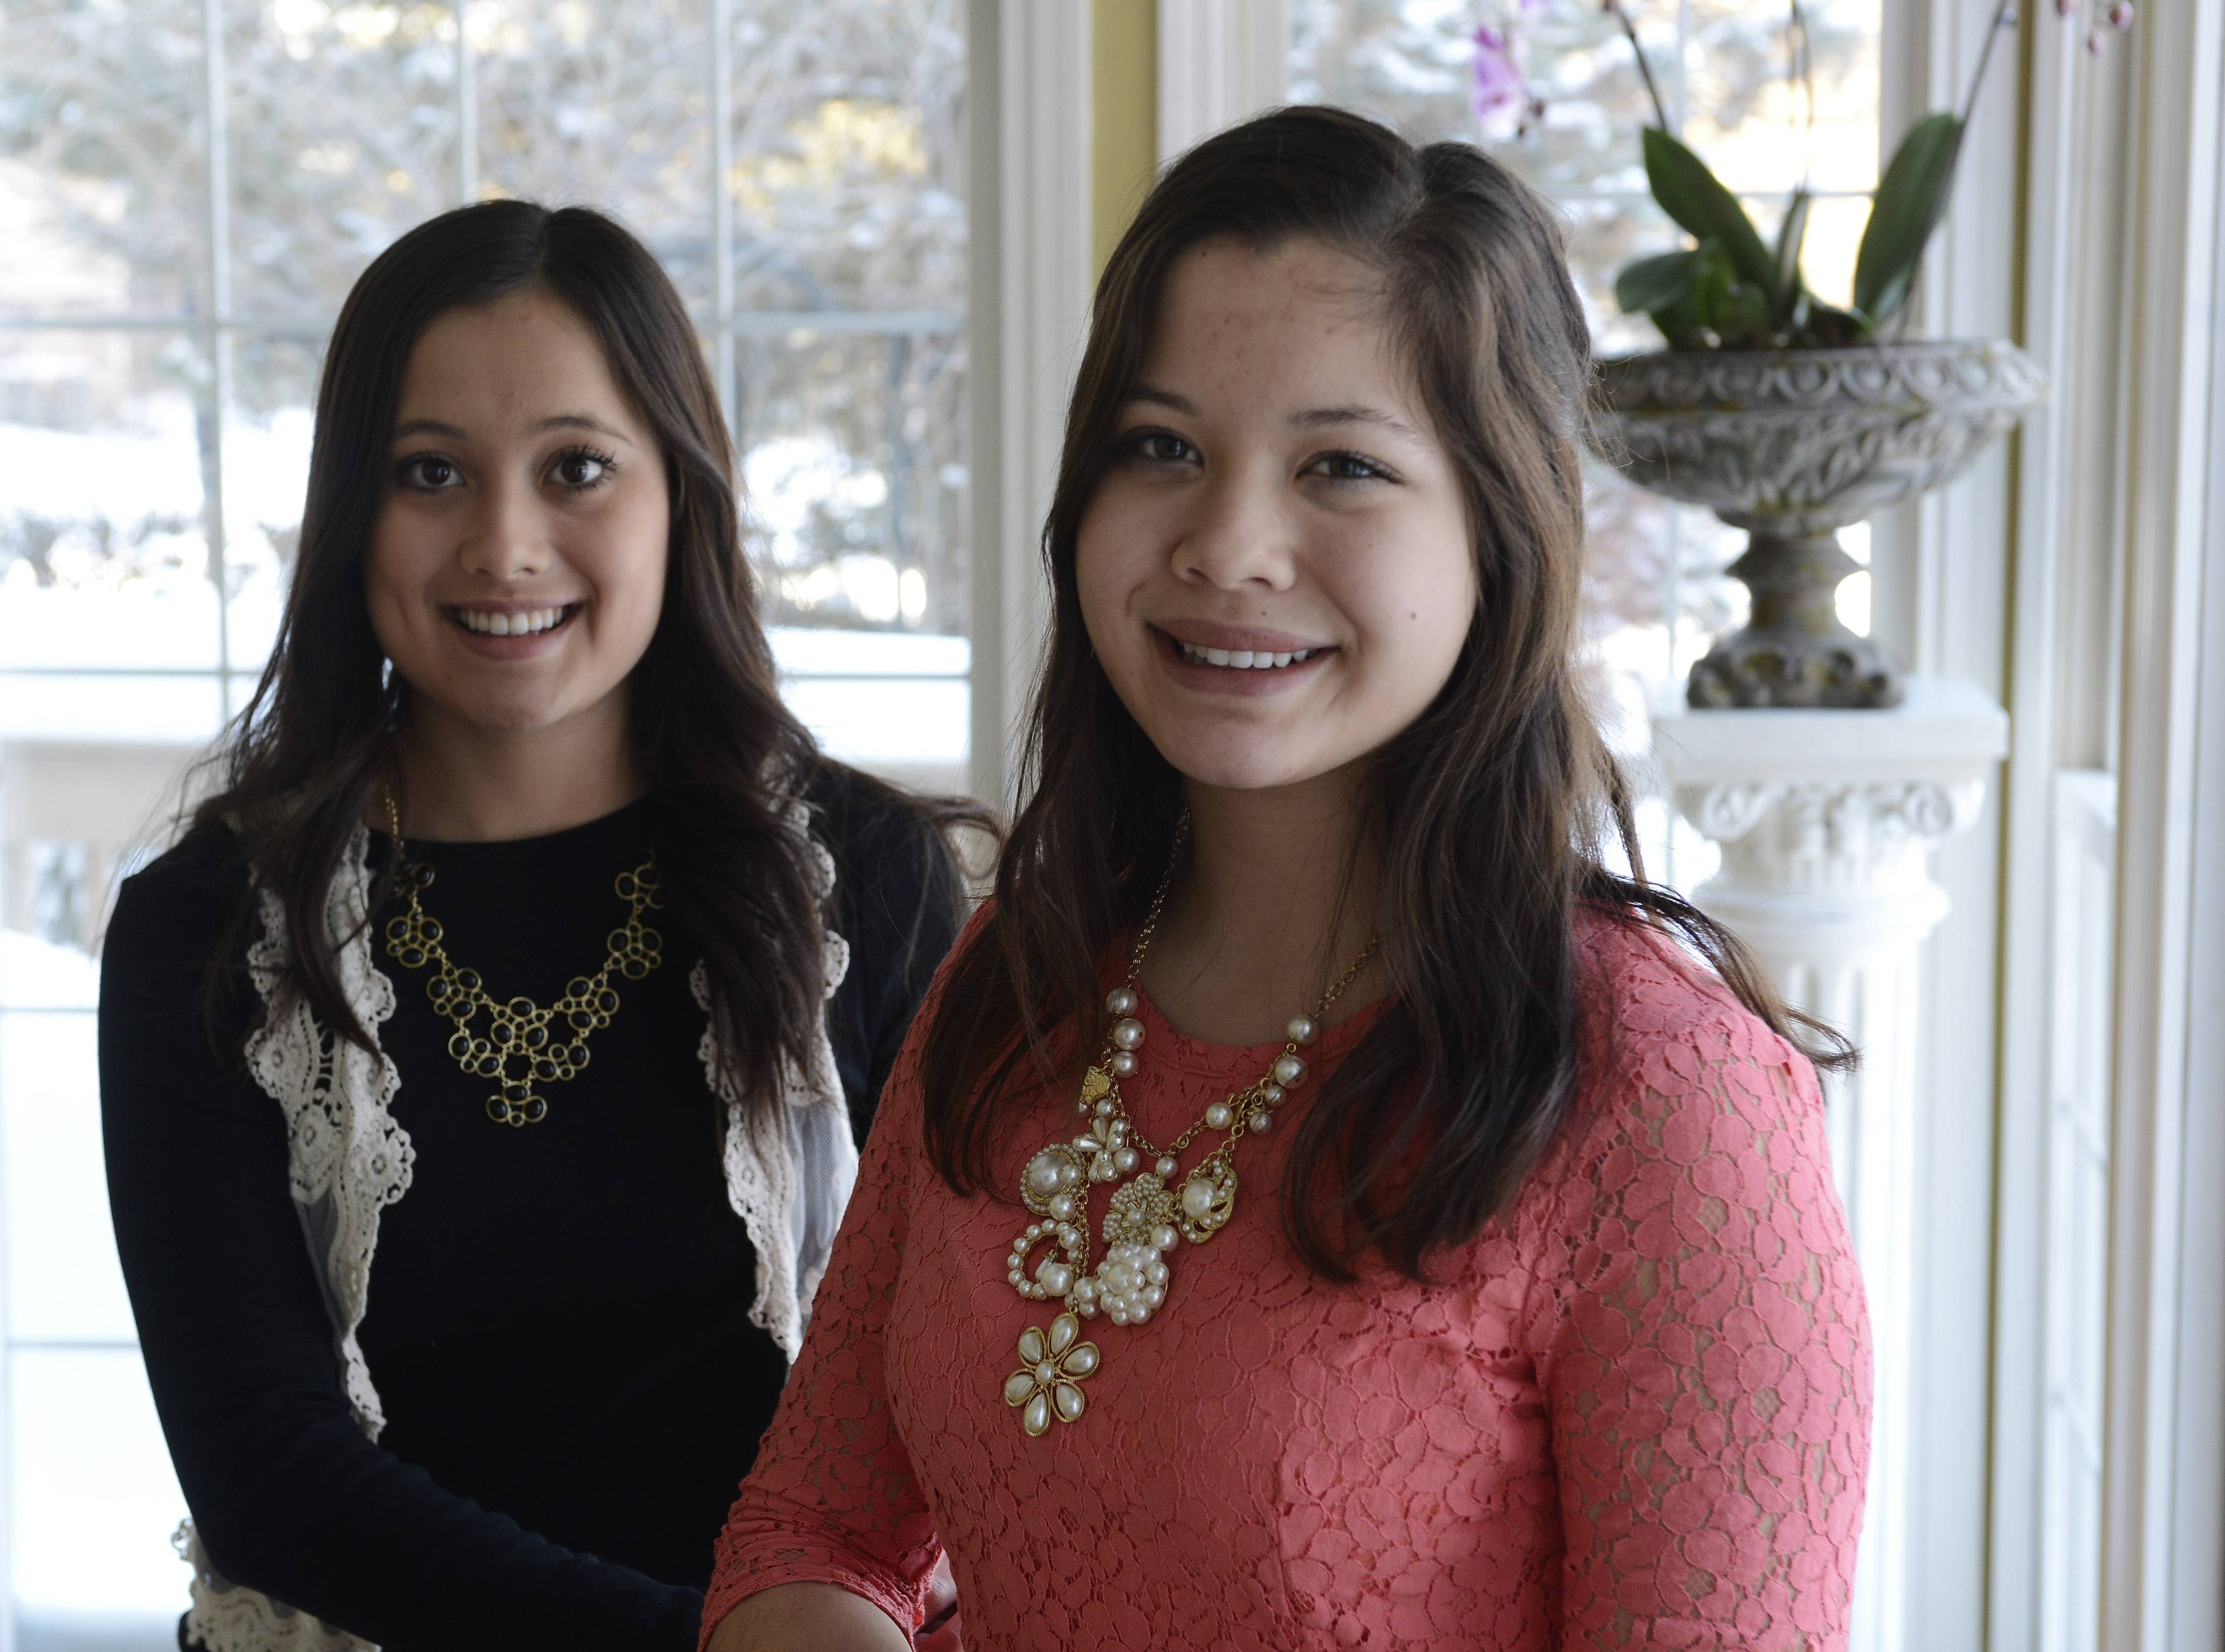 "JOE LEWNARD/jlewnard@dailyherald.com  Courtney Quigley, 17, of Barrington, right, and her twin sister, Ashley, have helped raise money to build homes for desperately poor families in Guatemala through a fashion show called ""Hope's in Style."" This year's show takes place March 1."